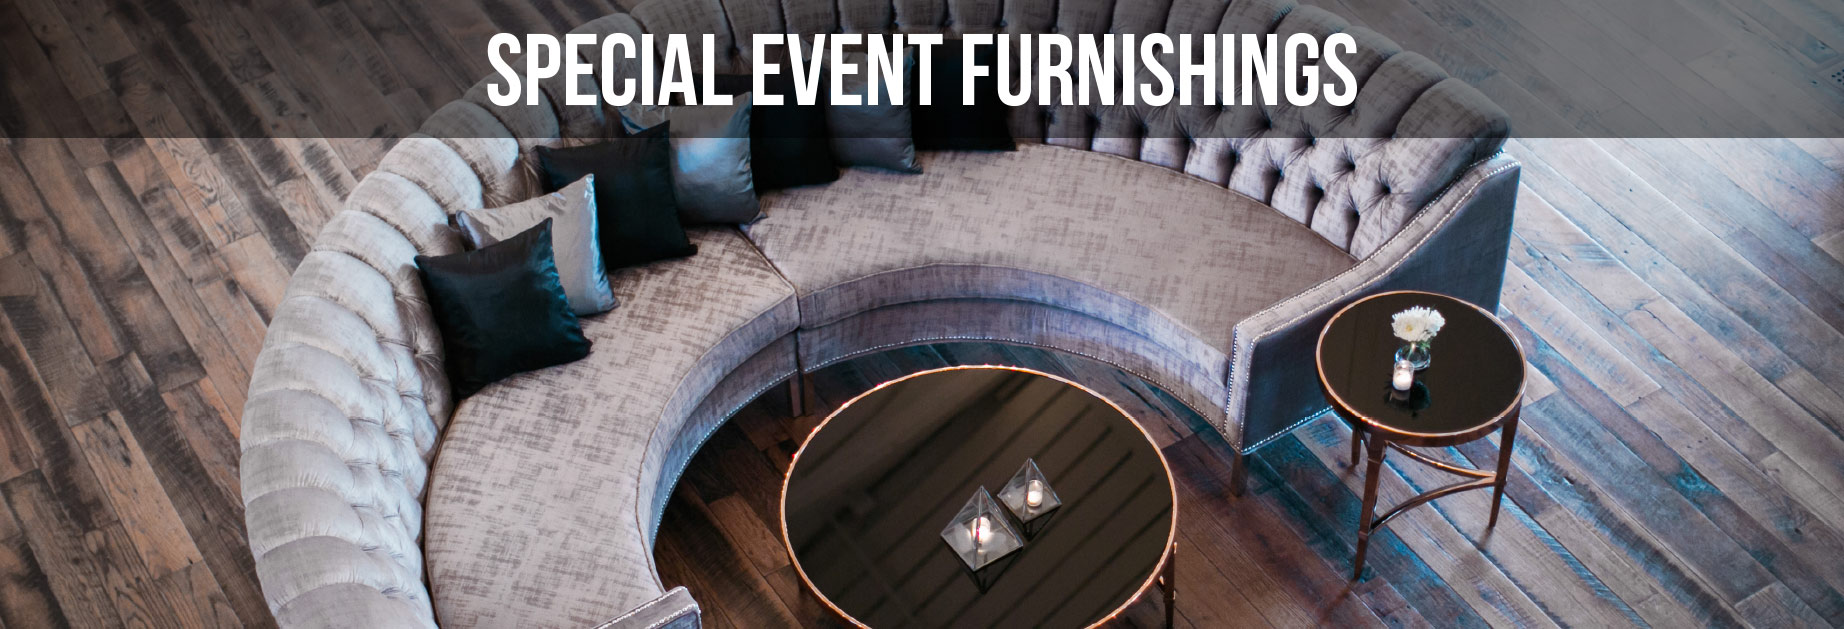 Special Event Furnishings